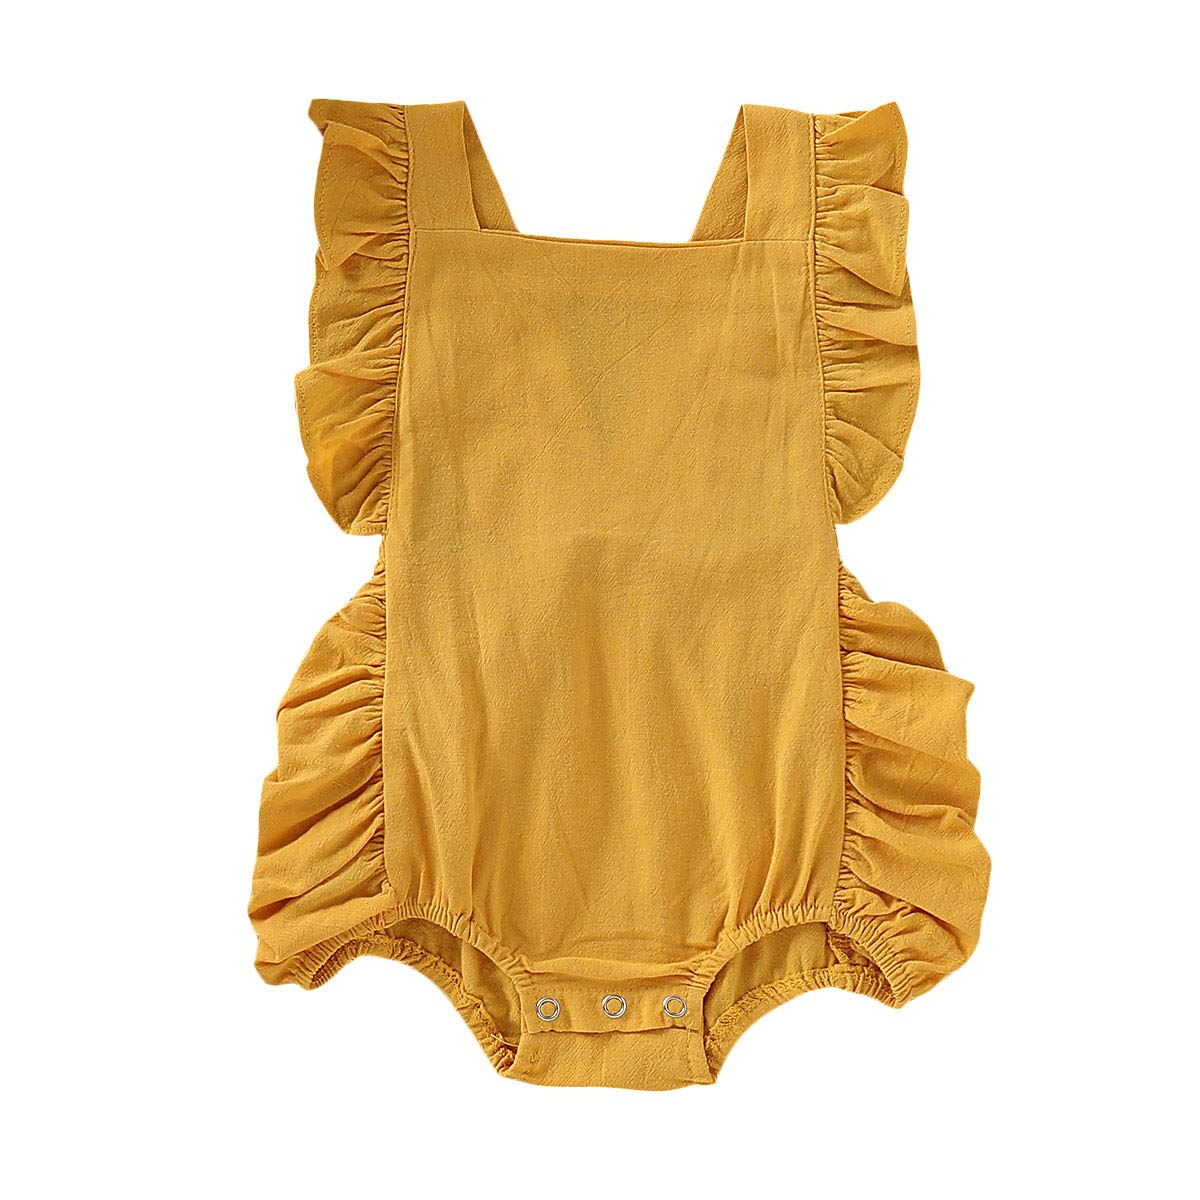 Willow Dance Newborn Baby Girl Bodysuits Cotton Ruffle Flutter Sleeve Romper One-Piece Outfits Clothes